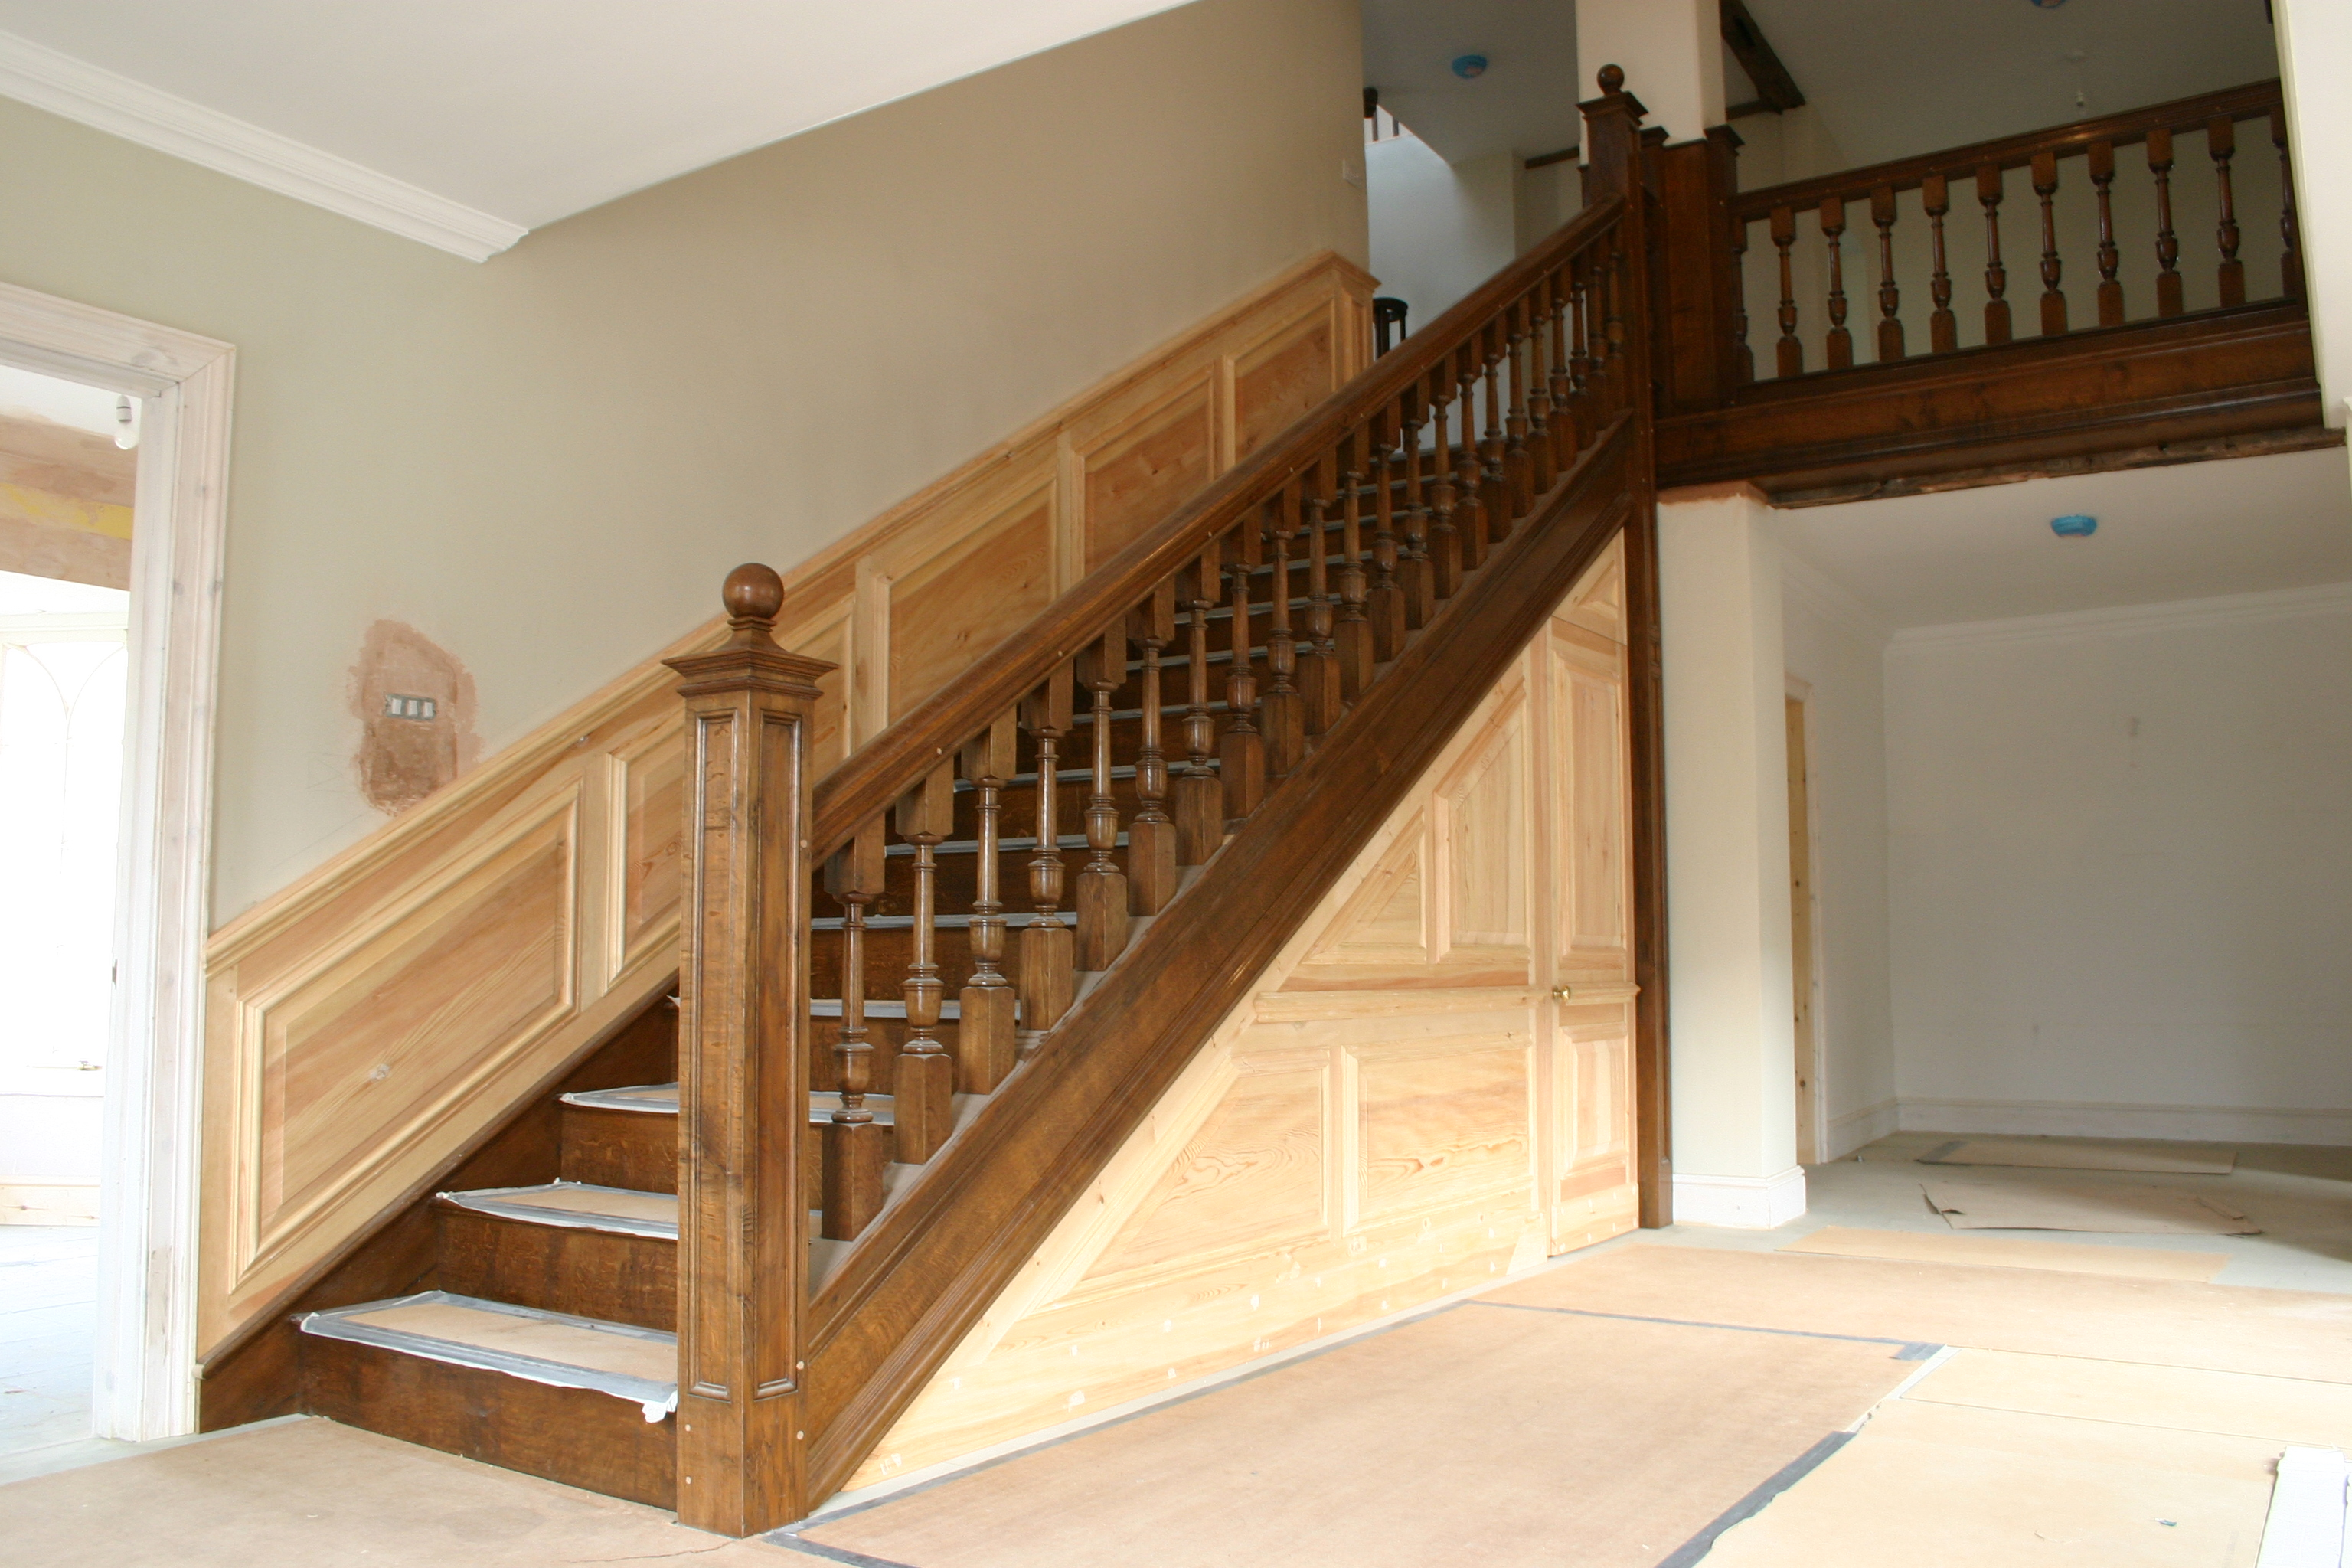 Paneled Staircase Architectural Joinery Damian Price Furniture And Joinery